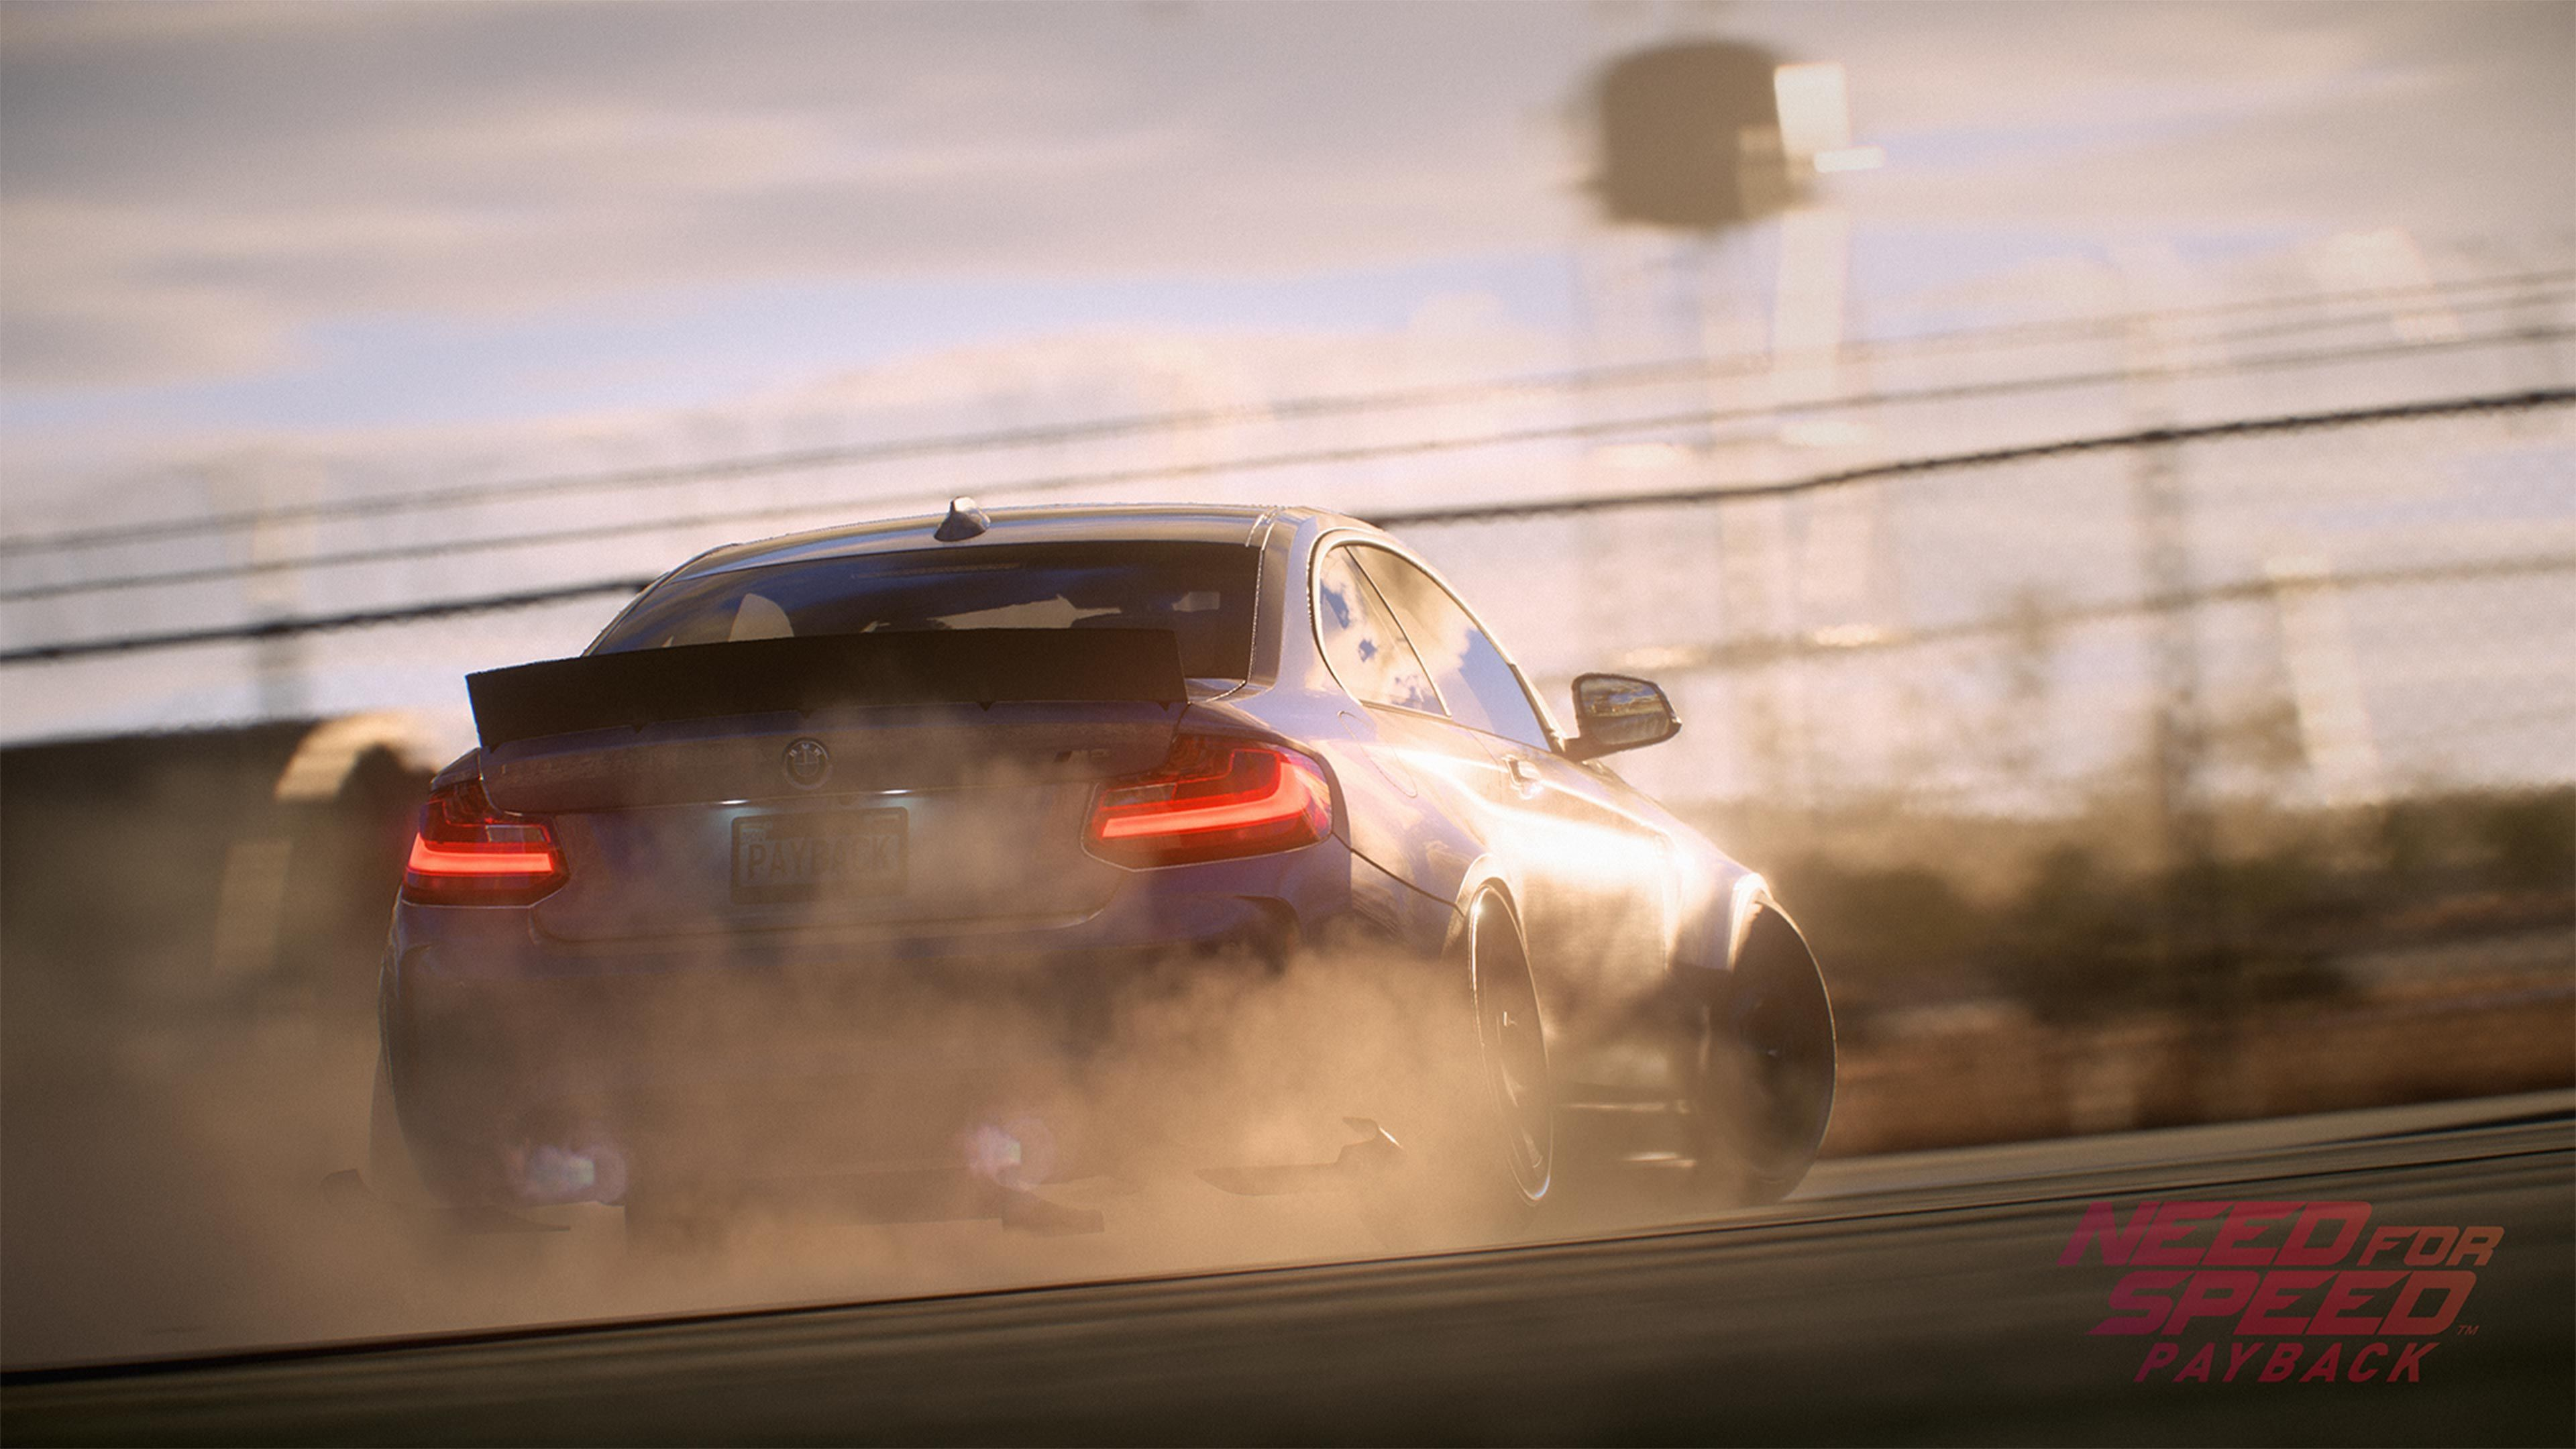 Need Speed Payback Bmw M3 4k Is An HD Desktop Wallpaper Posted In Our Free Image Collection Of Gaming Wallpapers